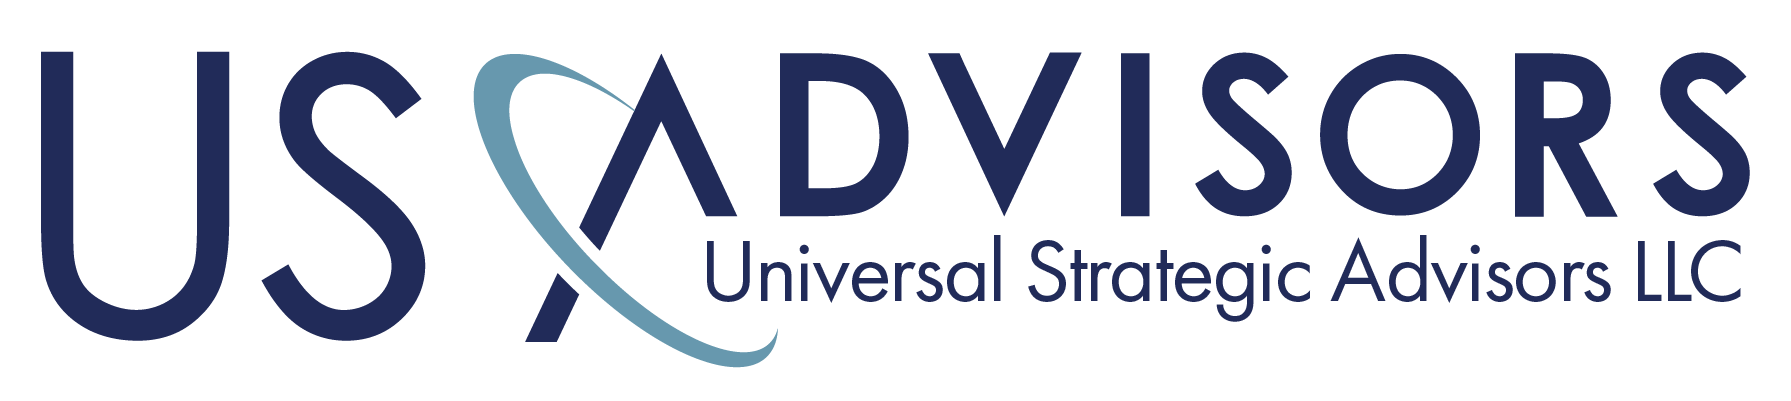 Universal Strategic Advisors, LLC Logo